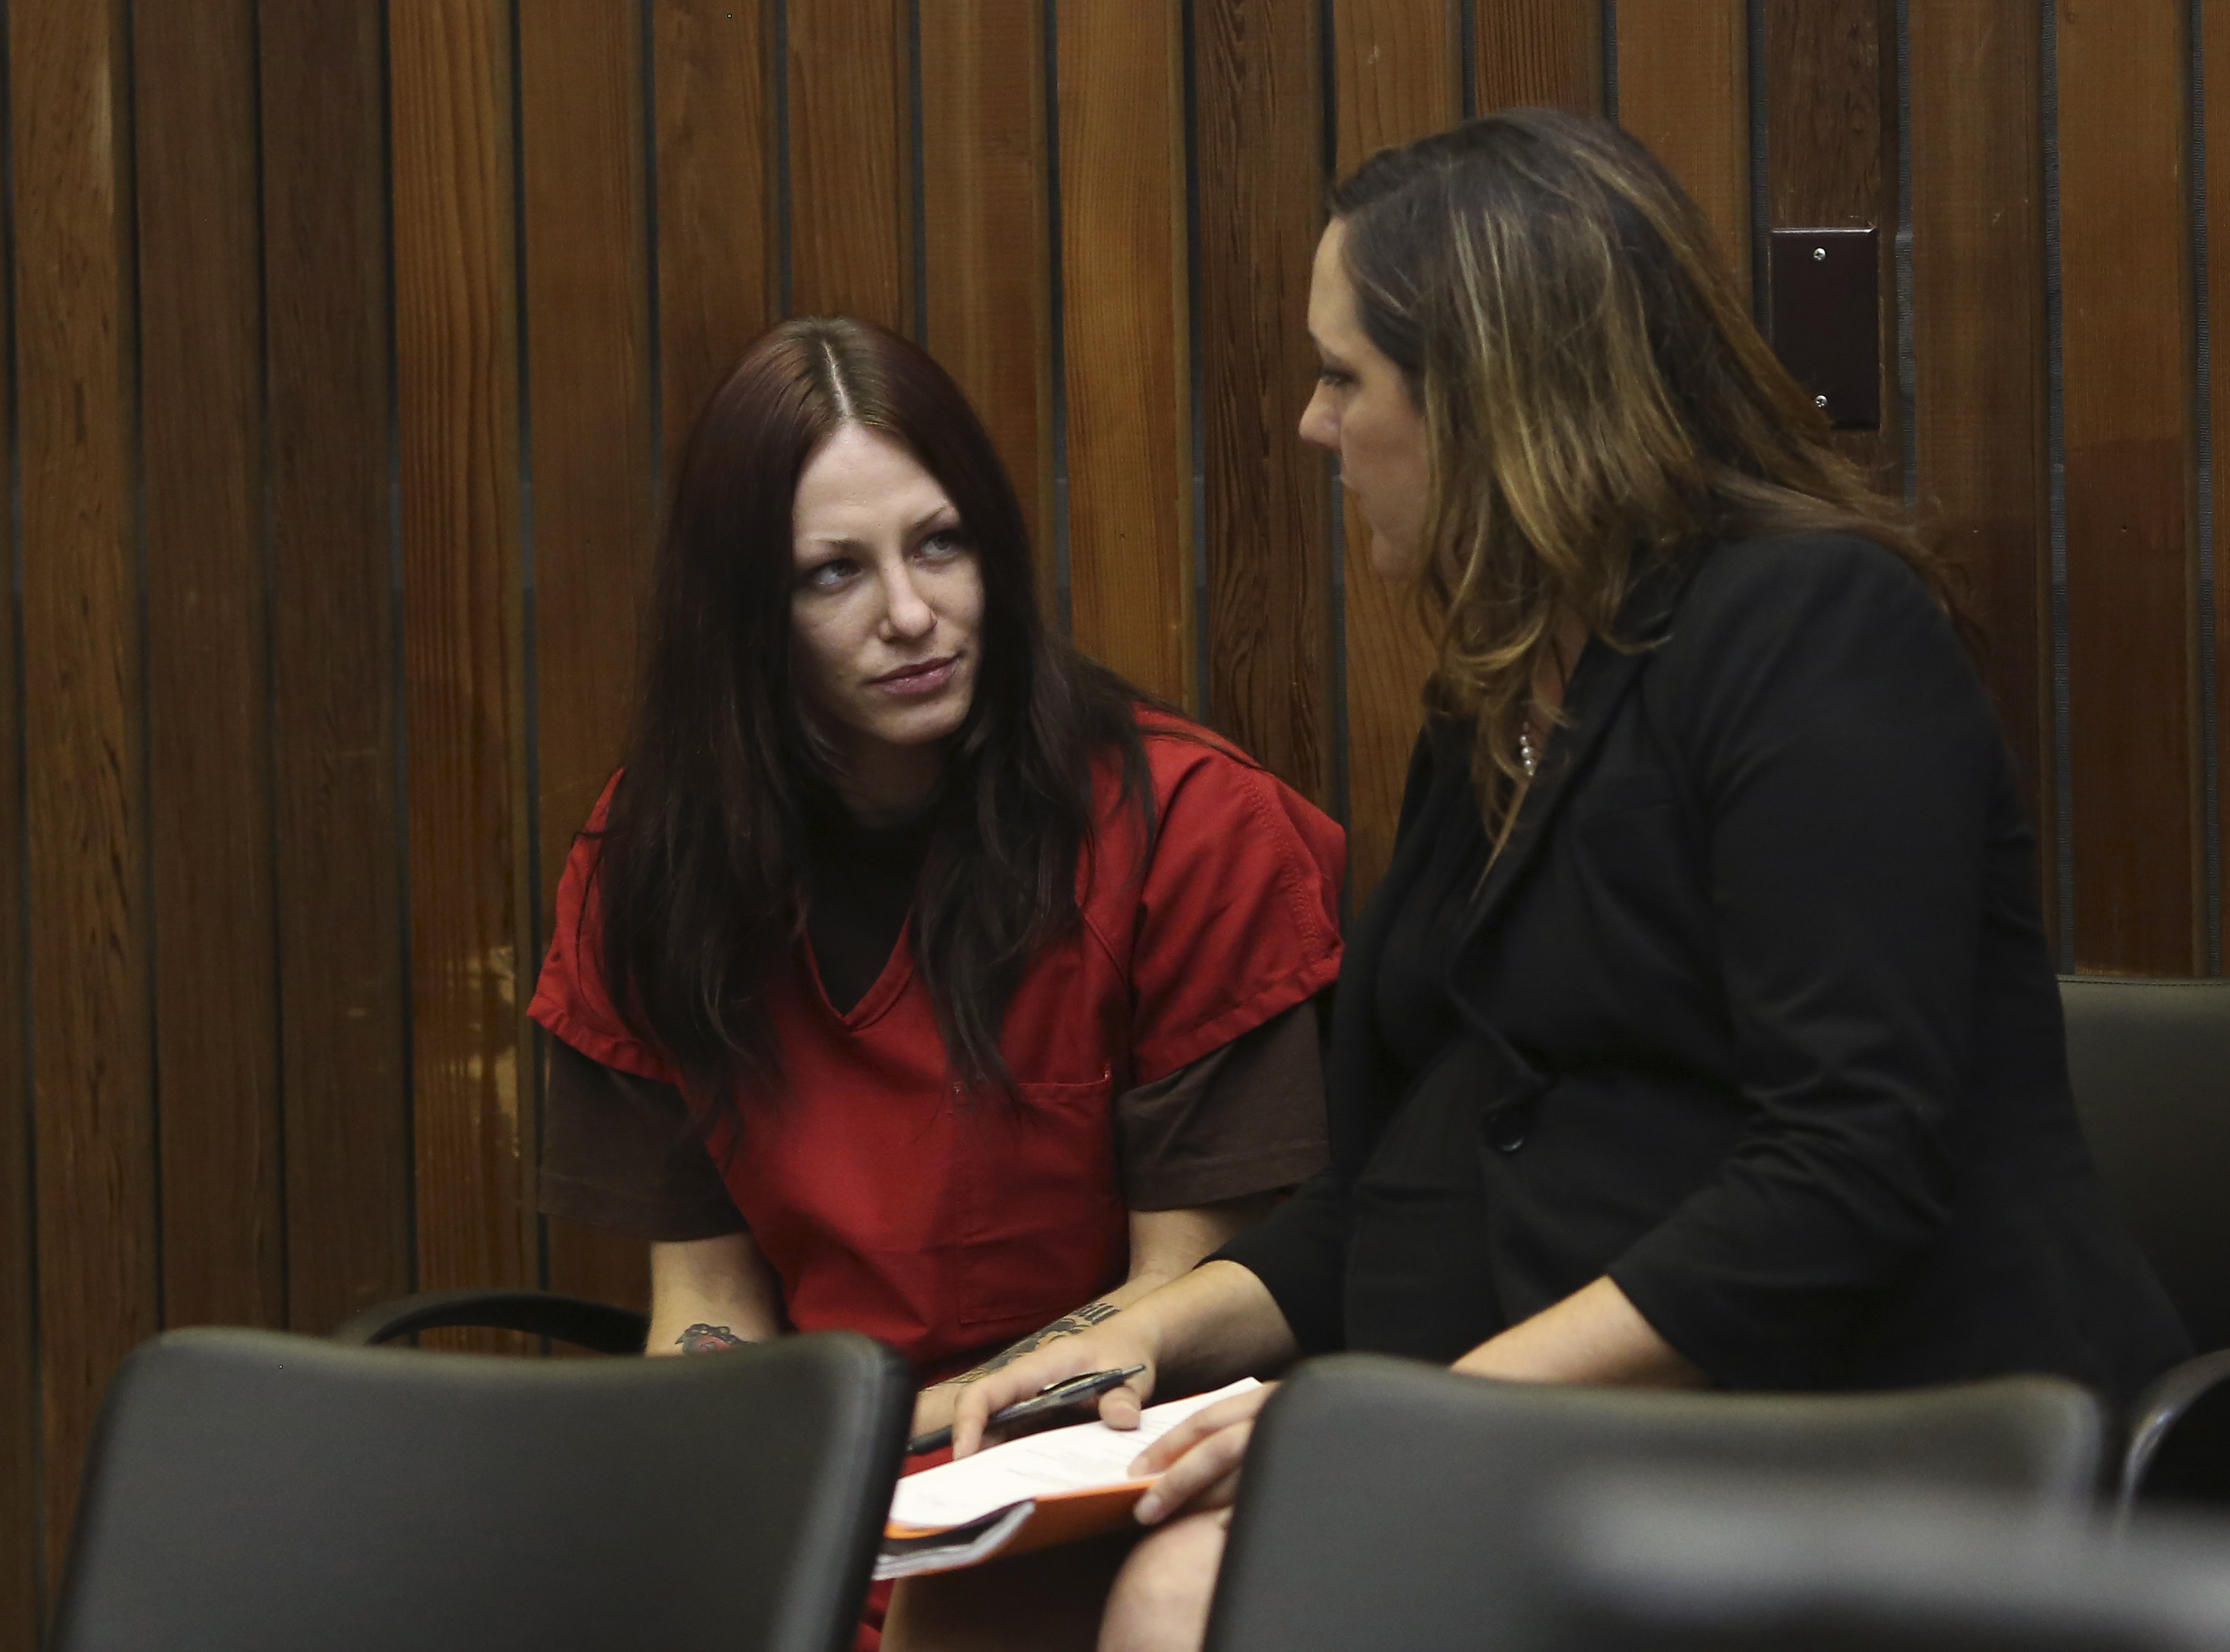 Alix Catherine Tichelman sits in the courtroom with her attorney, Athena Reis, during her arraignment in Santa Cruz